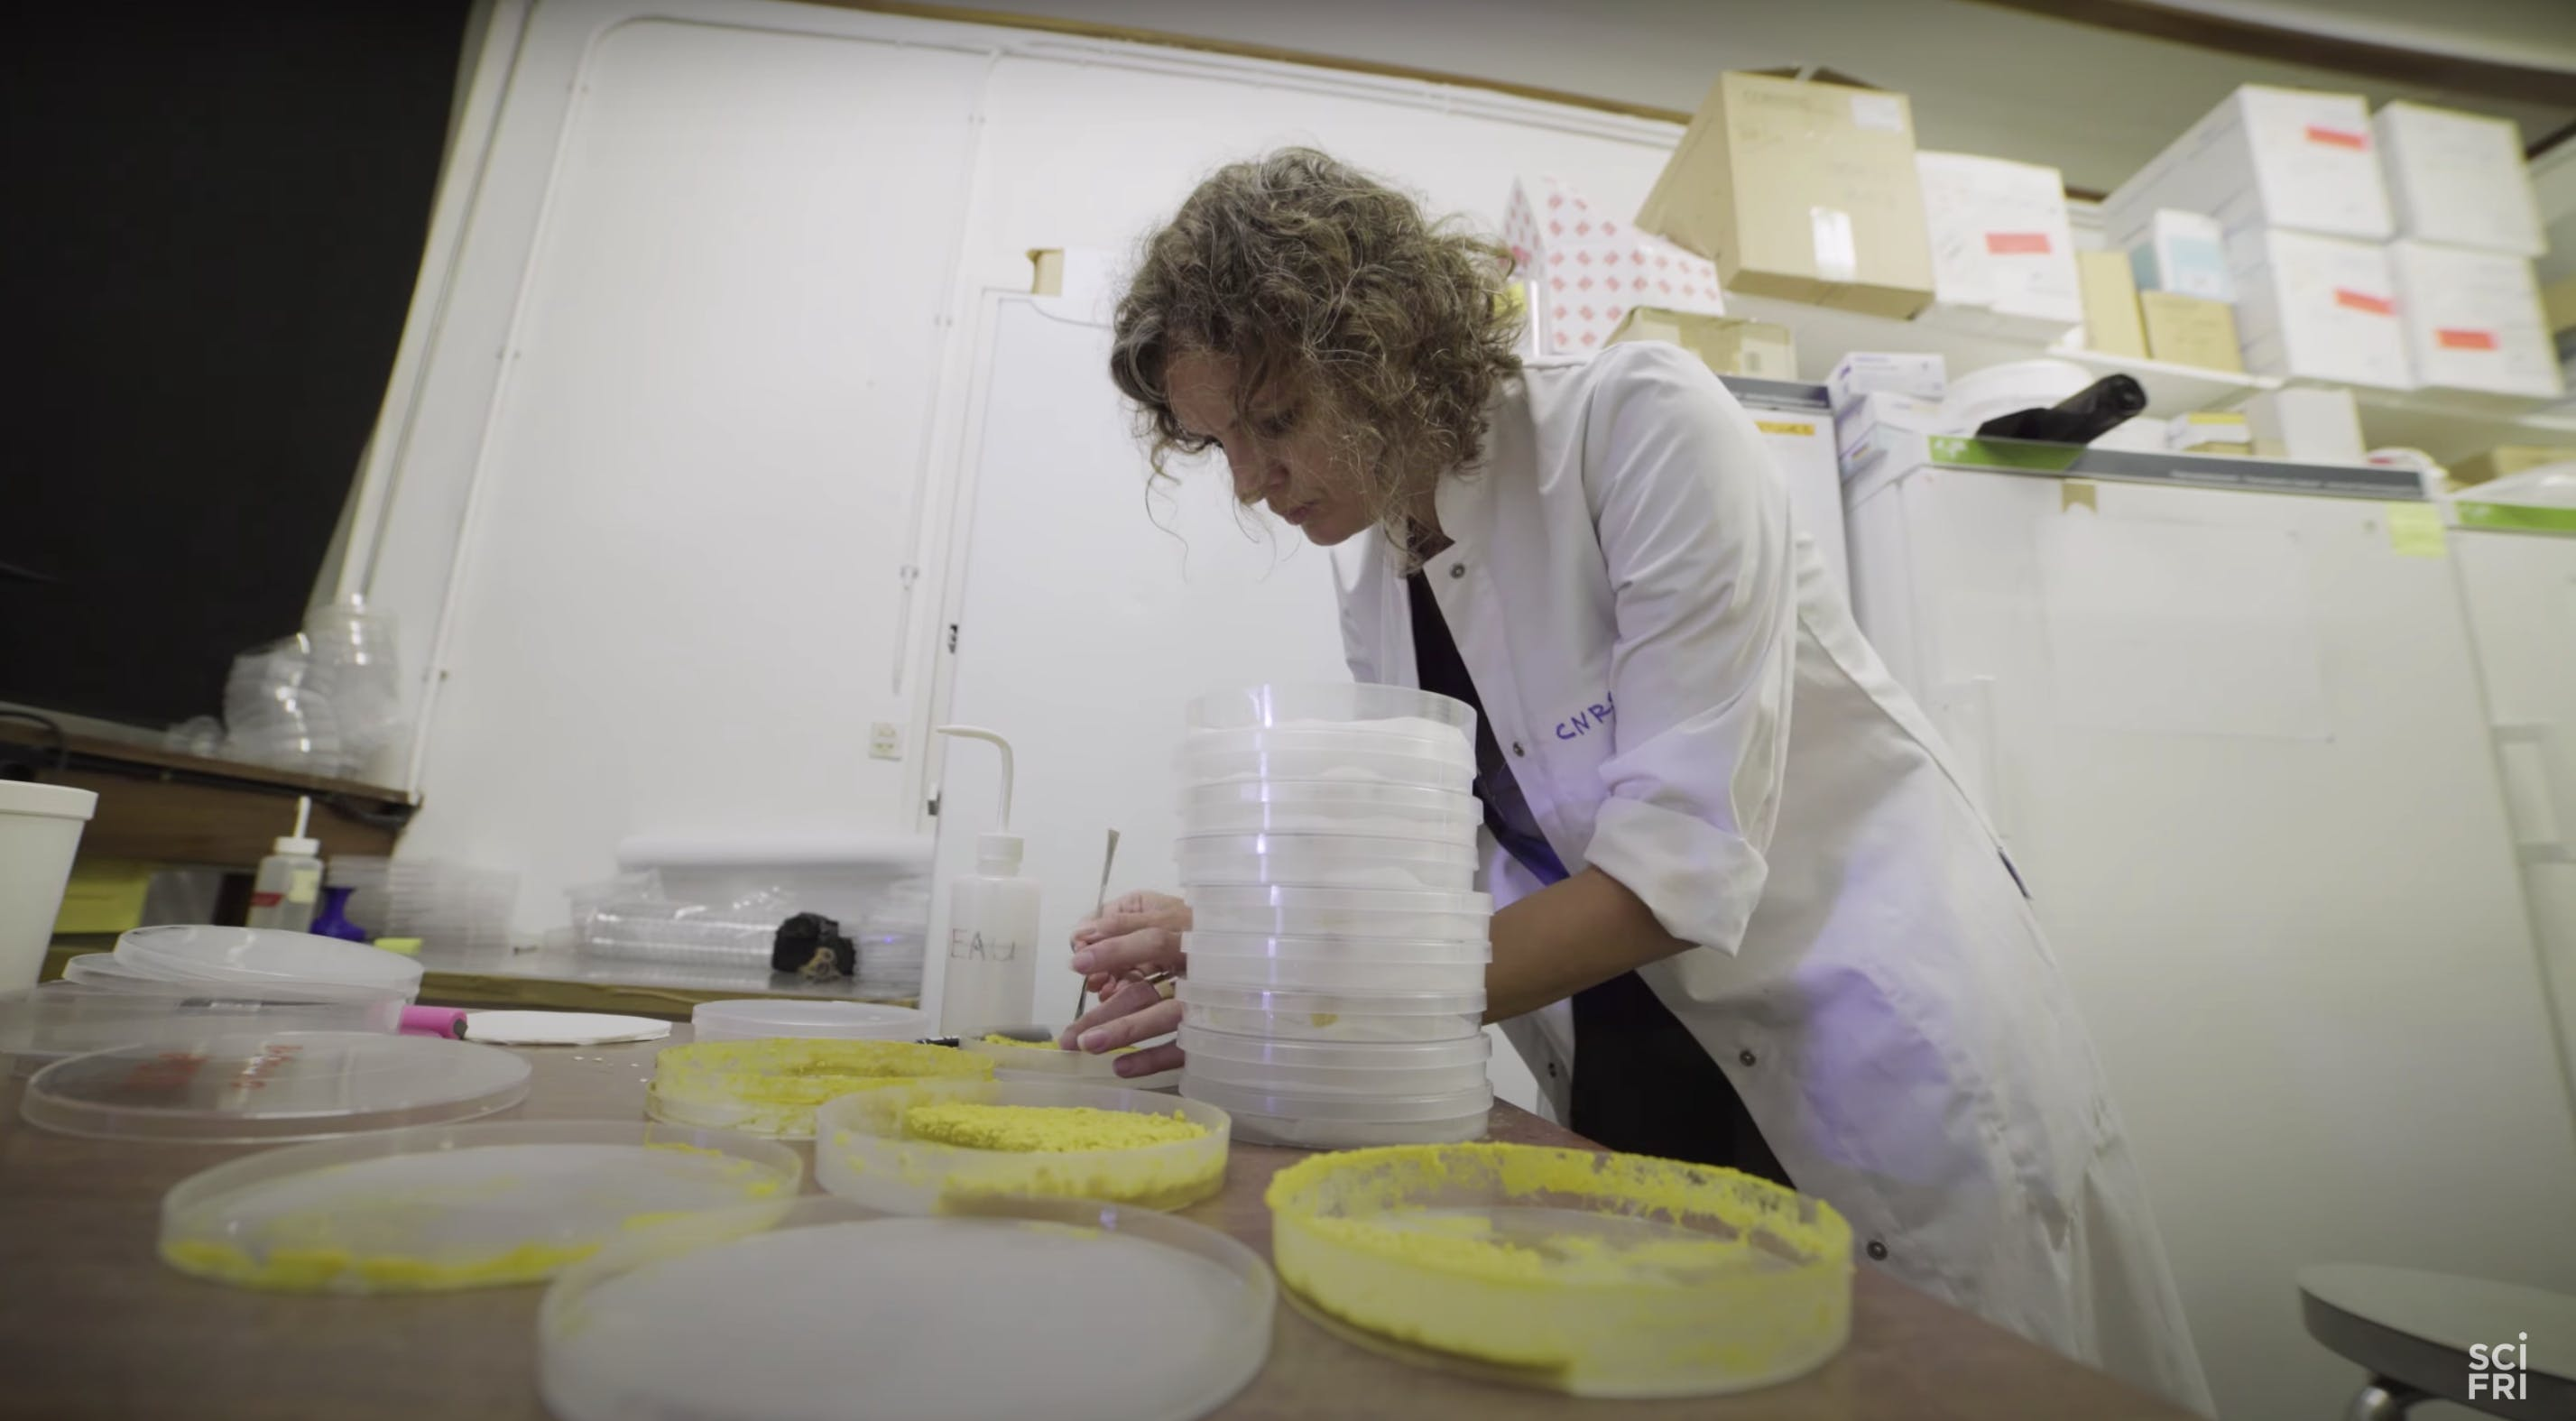 Audrey Dussutour setting up a slime mold experiment